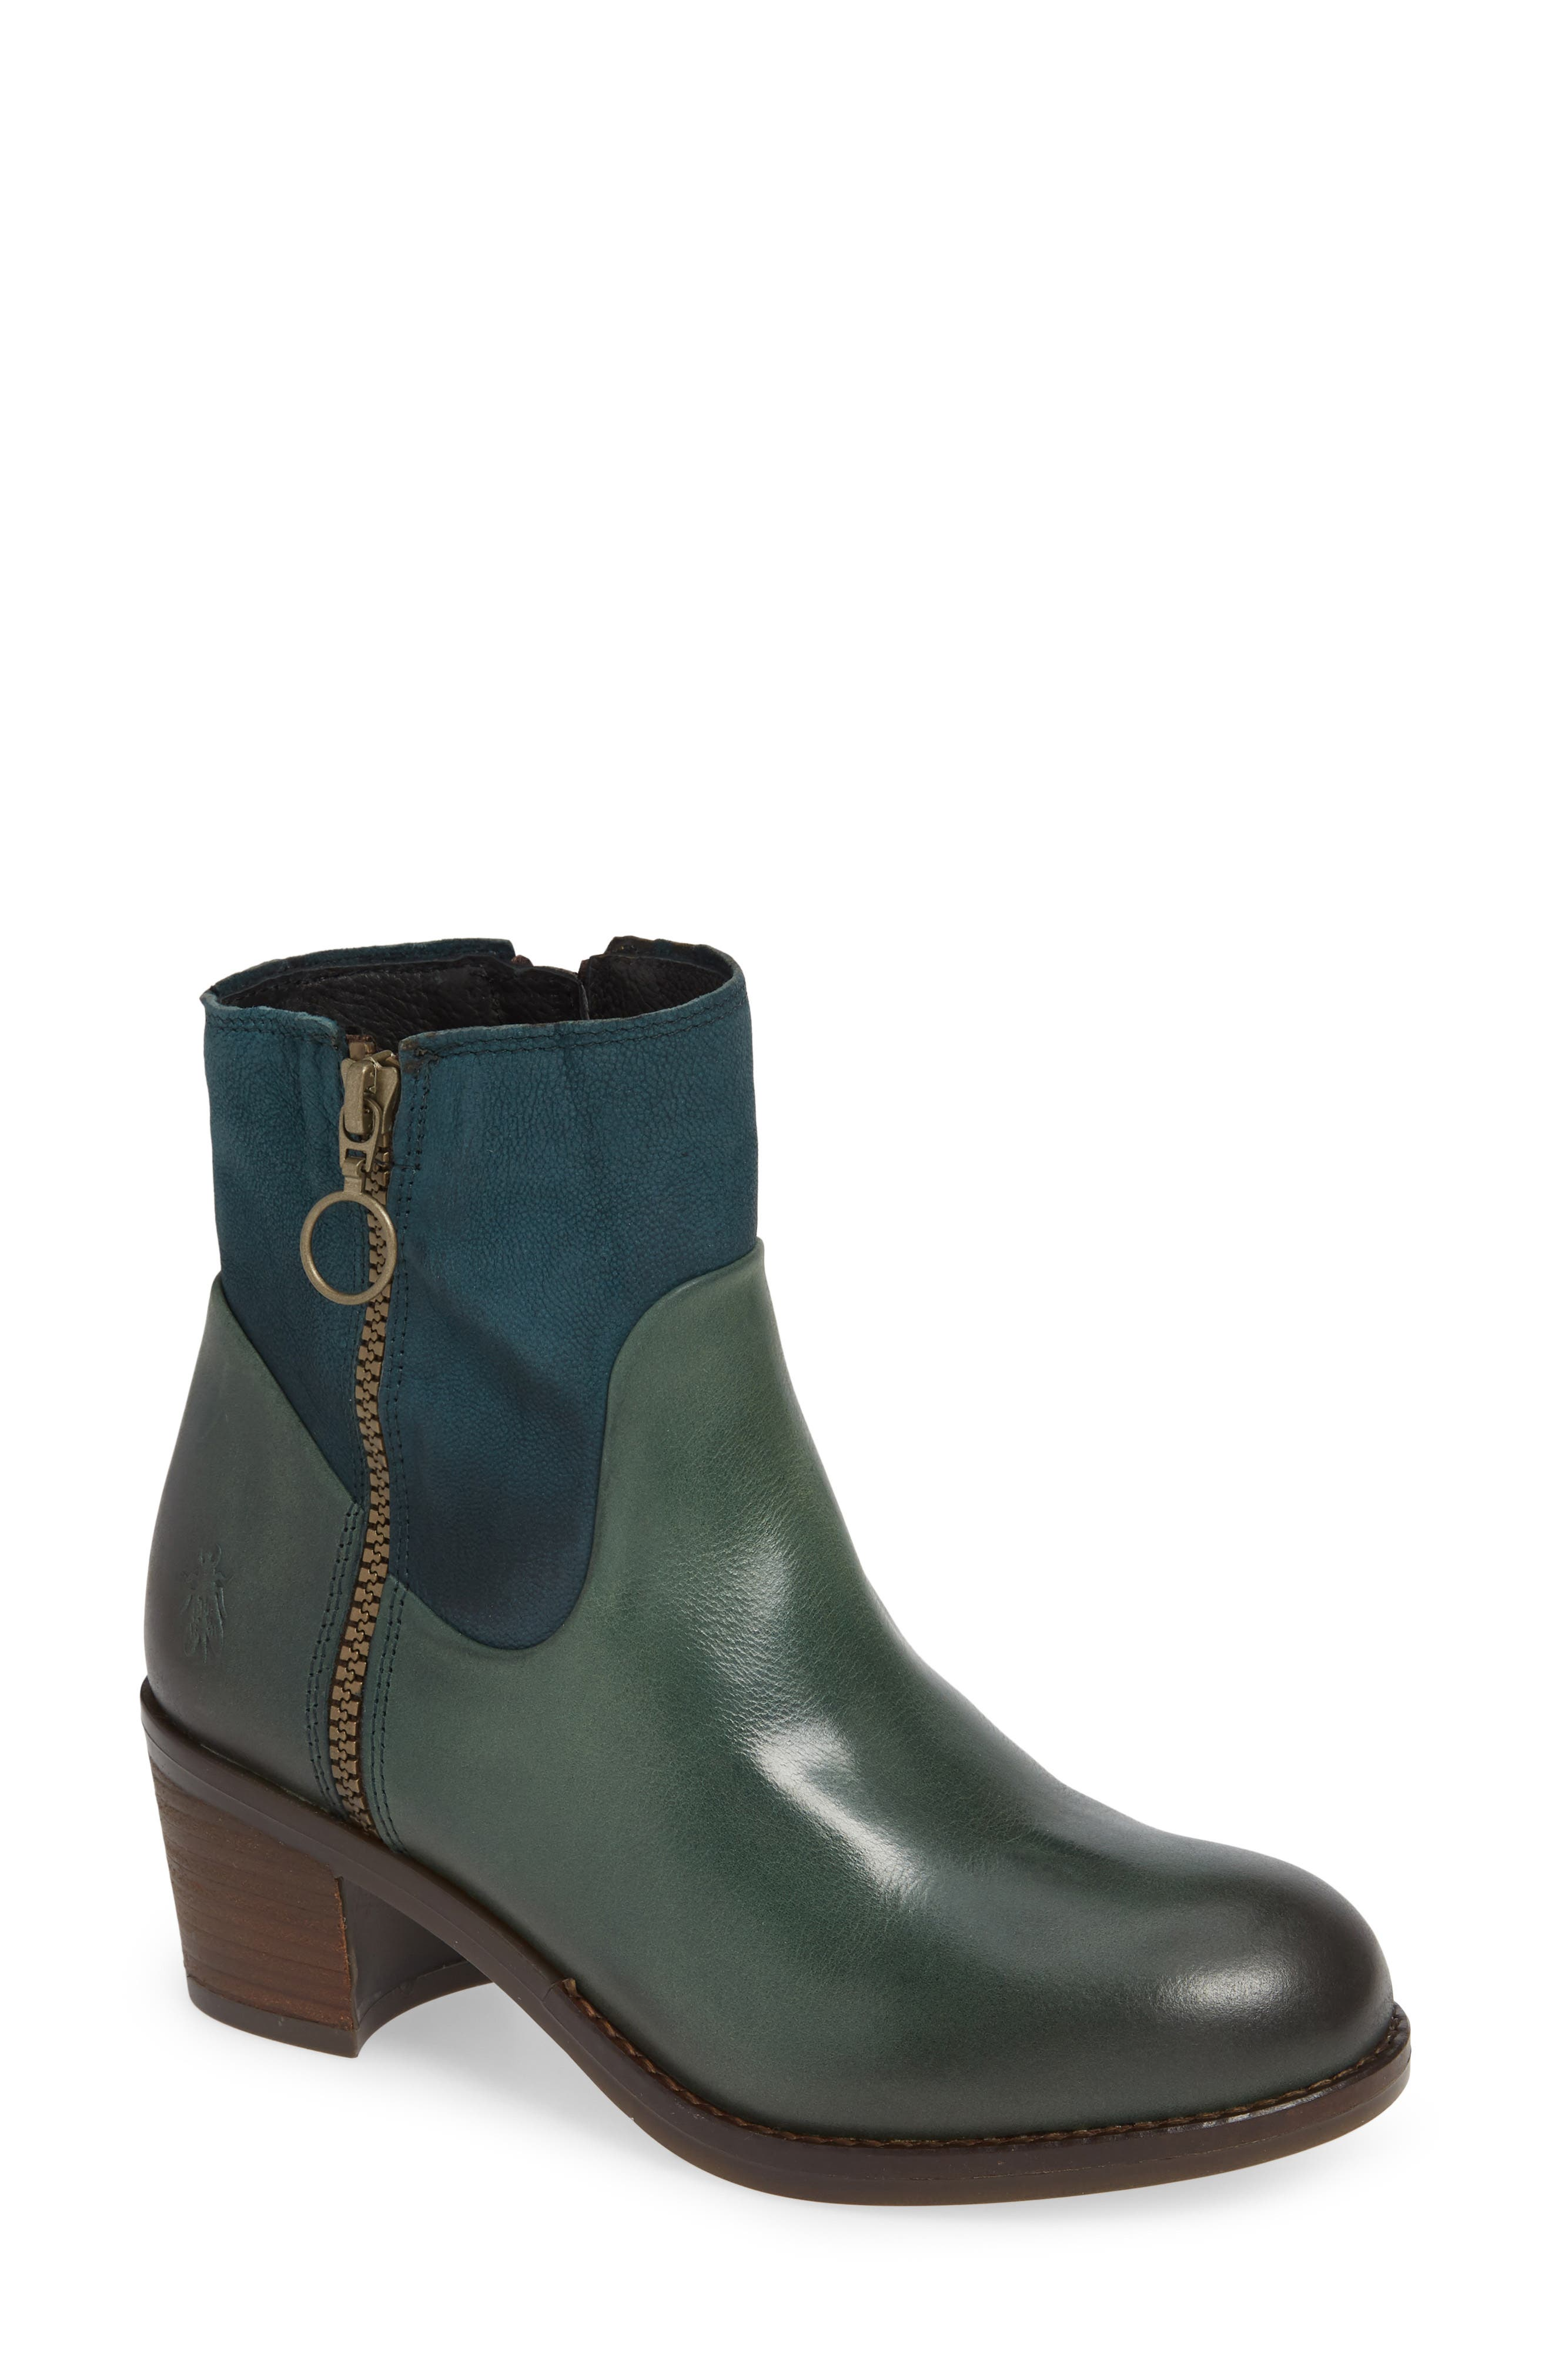 Fly London Zami Bootie - Green